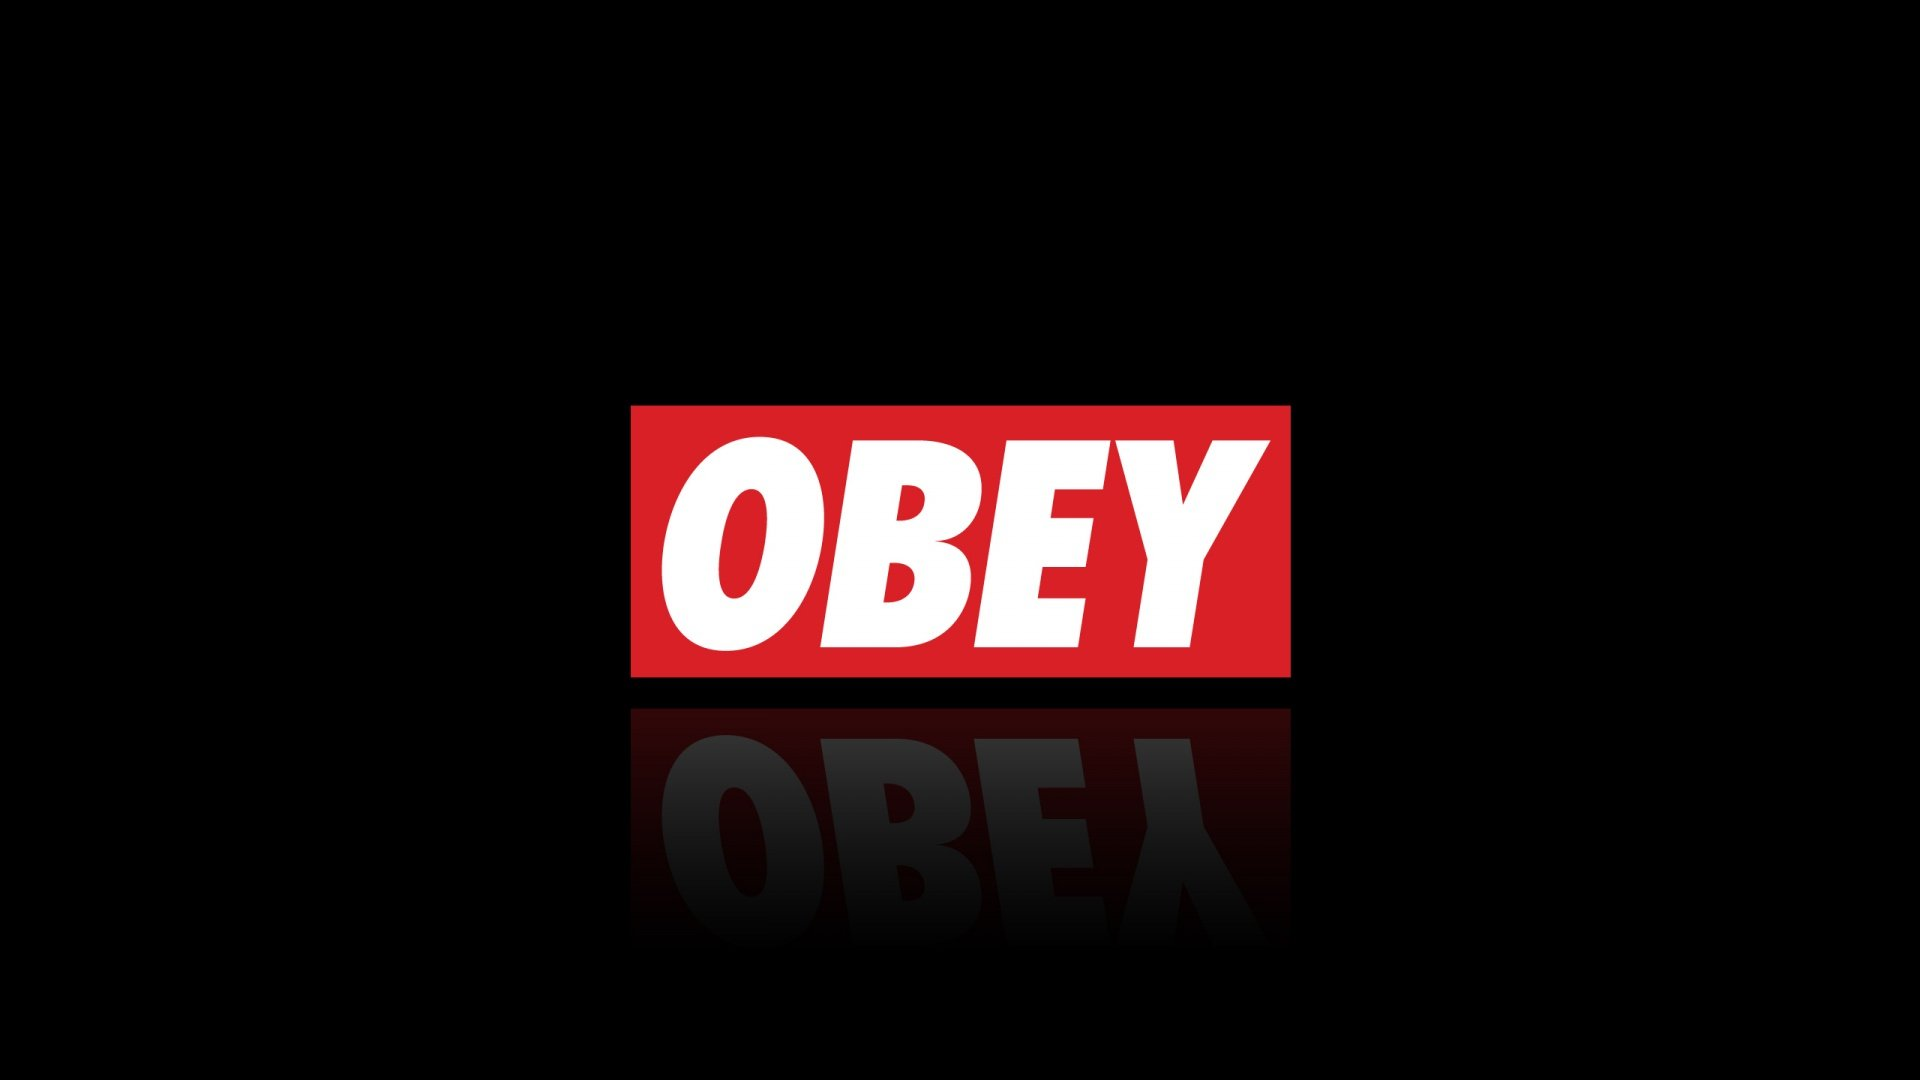 obey cool backgrounds wallpaper you re currently on page obey cool 1920x1080